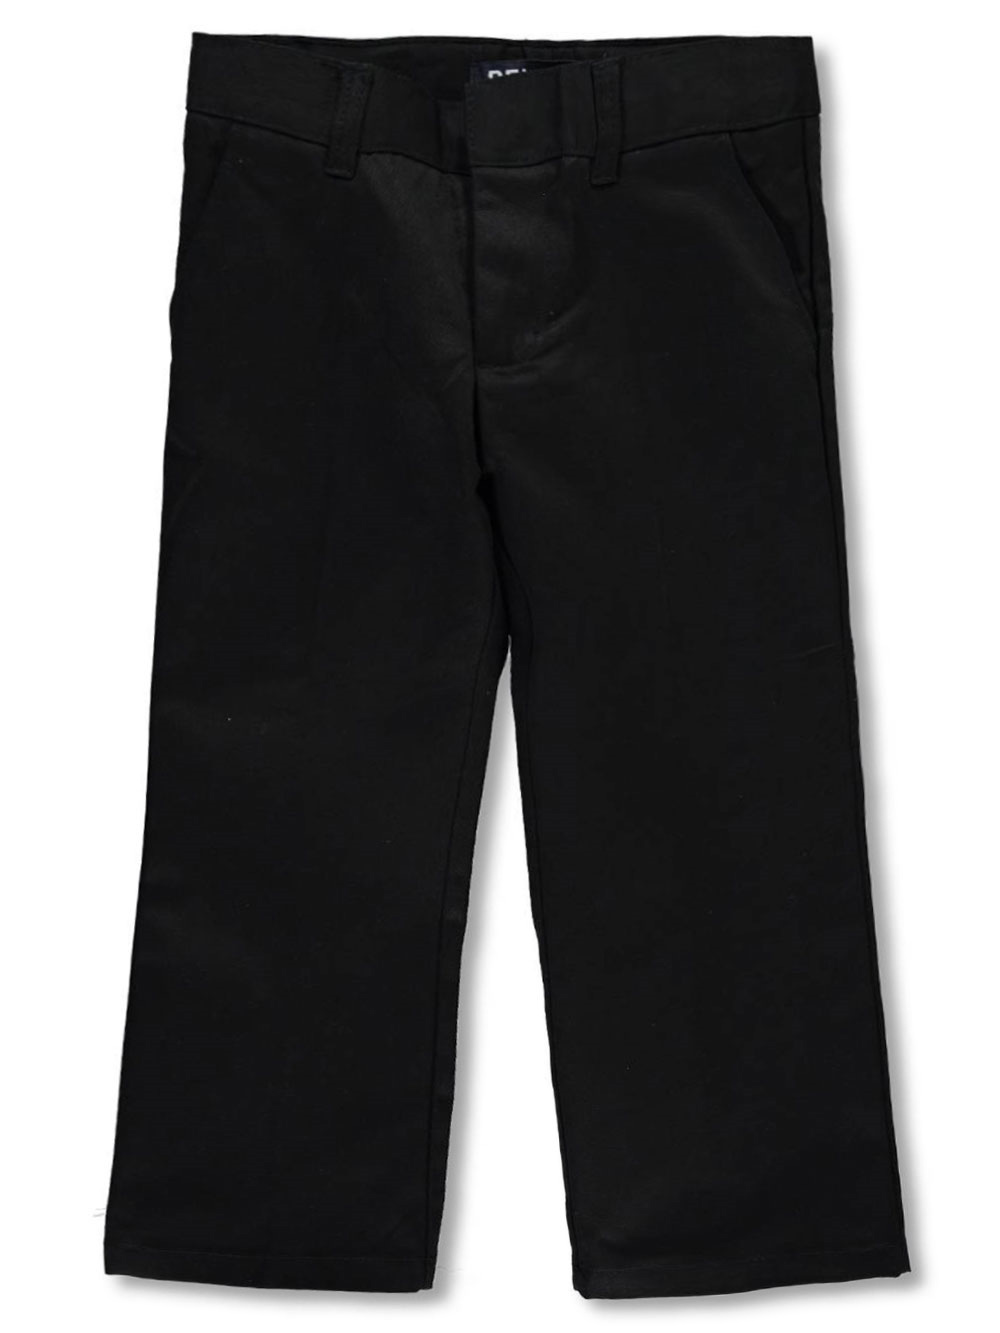 French Toast Big Boys/' Wrinkle No More Relaxed Fit Pants Sizes 8-20